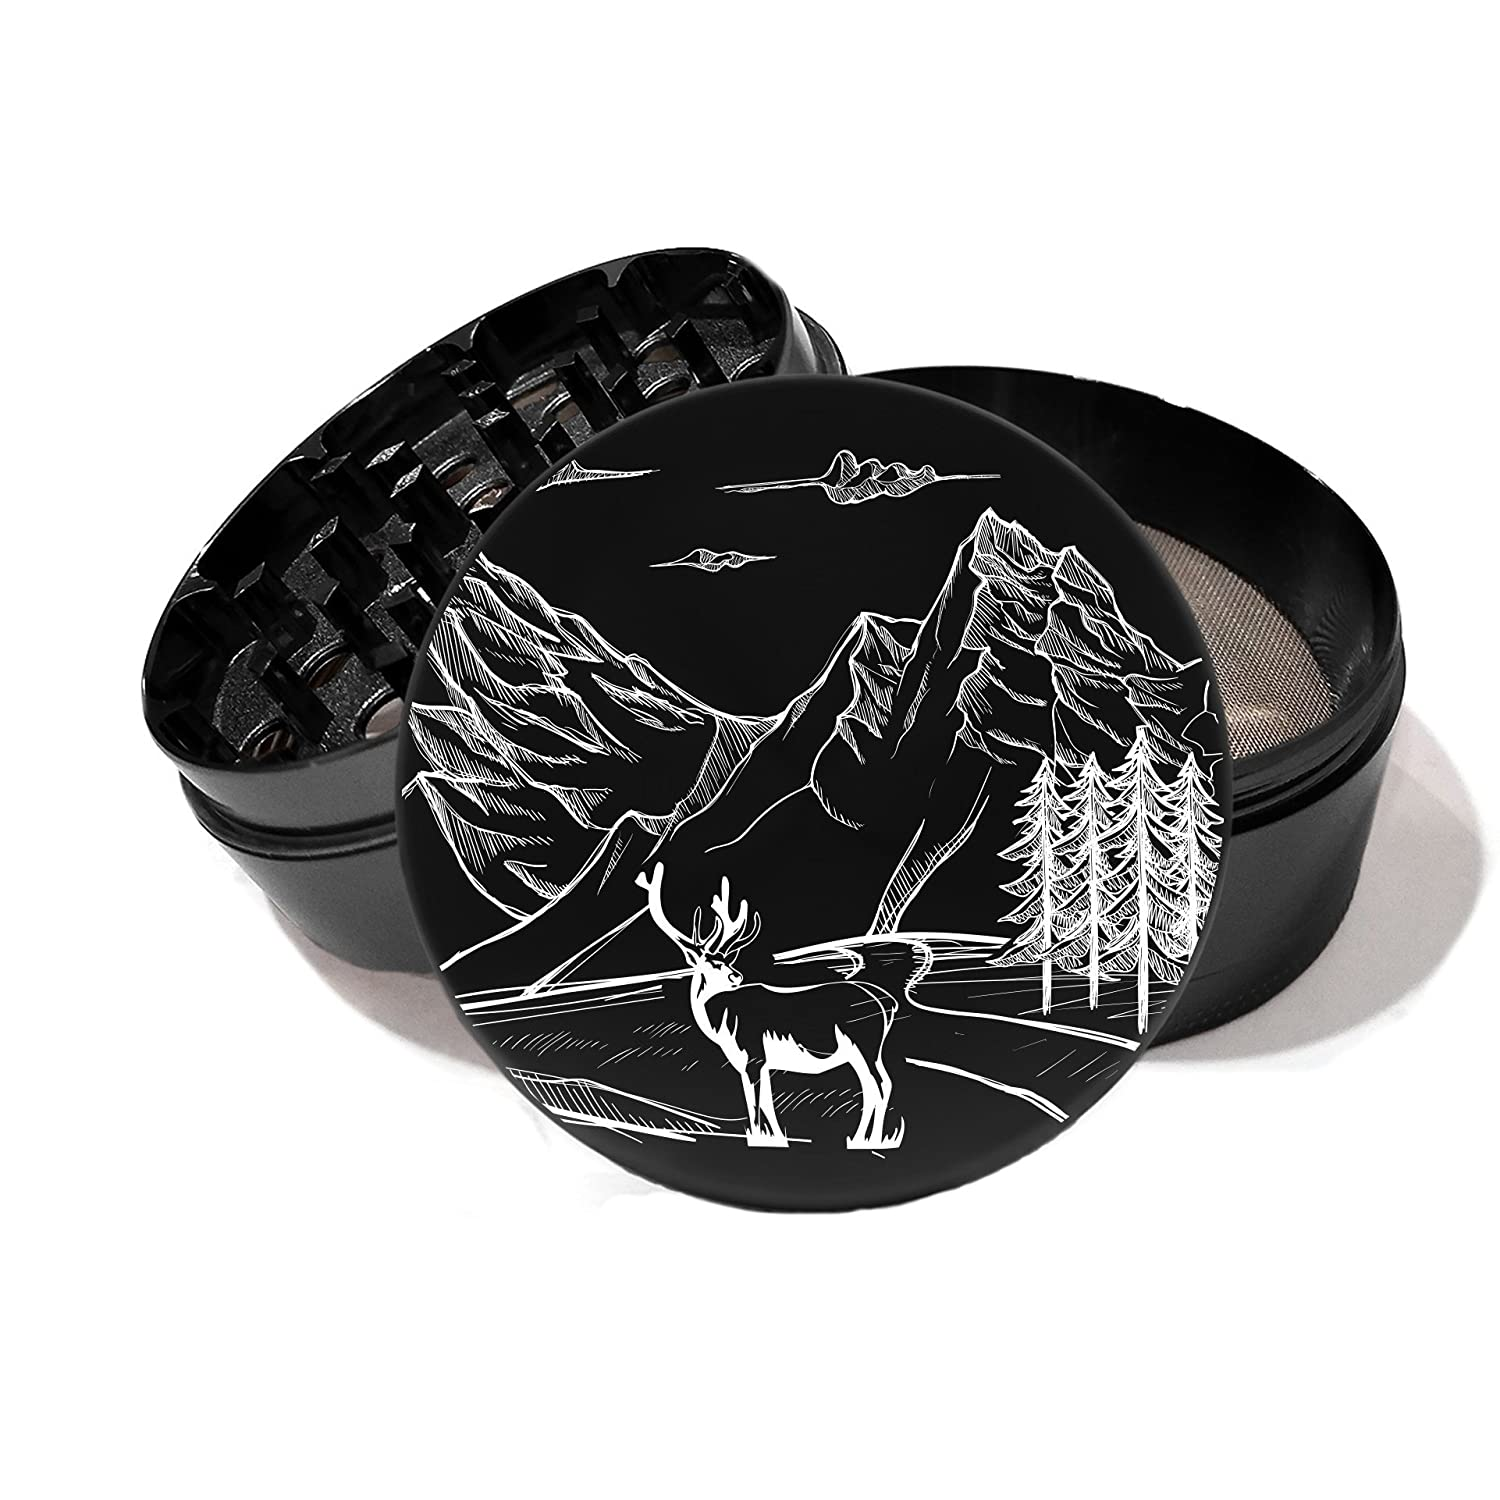 Large 100 mm 4 inch Largest Herb Grinder Spice Mill Black Anodized Aircraft Grade Premium Aluminium Laser Engraved Mountains Wilderness Deer